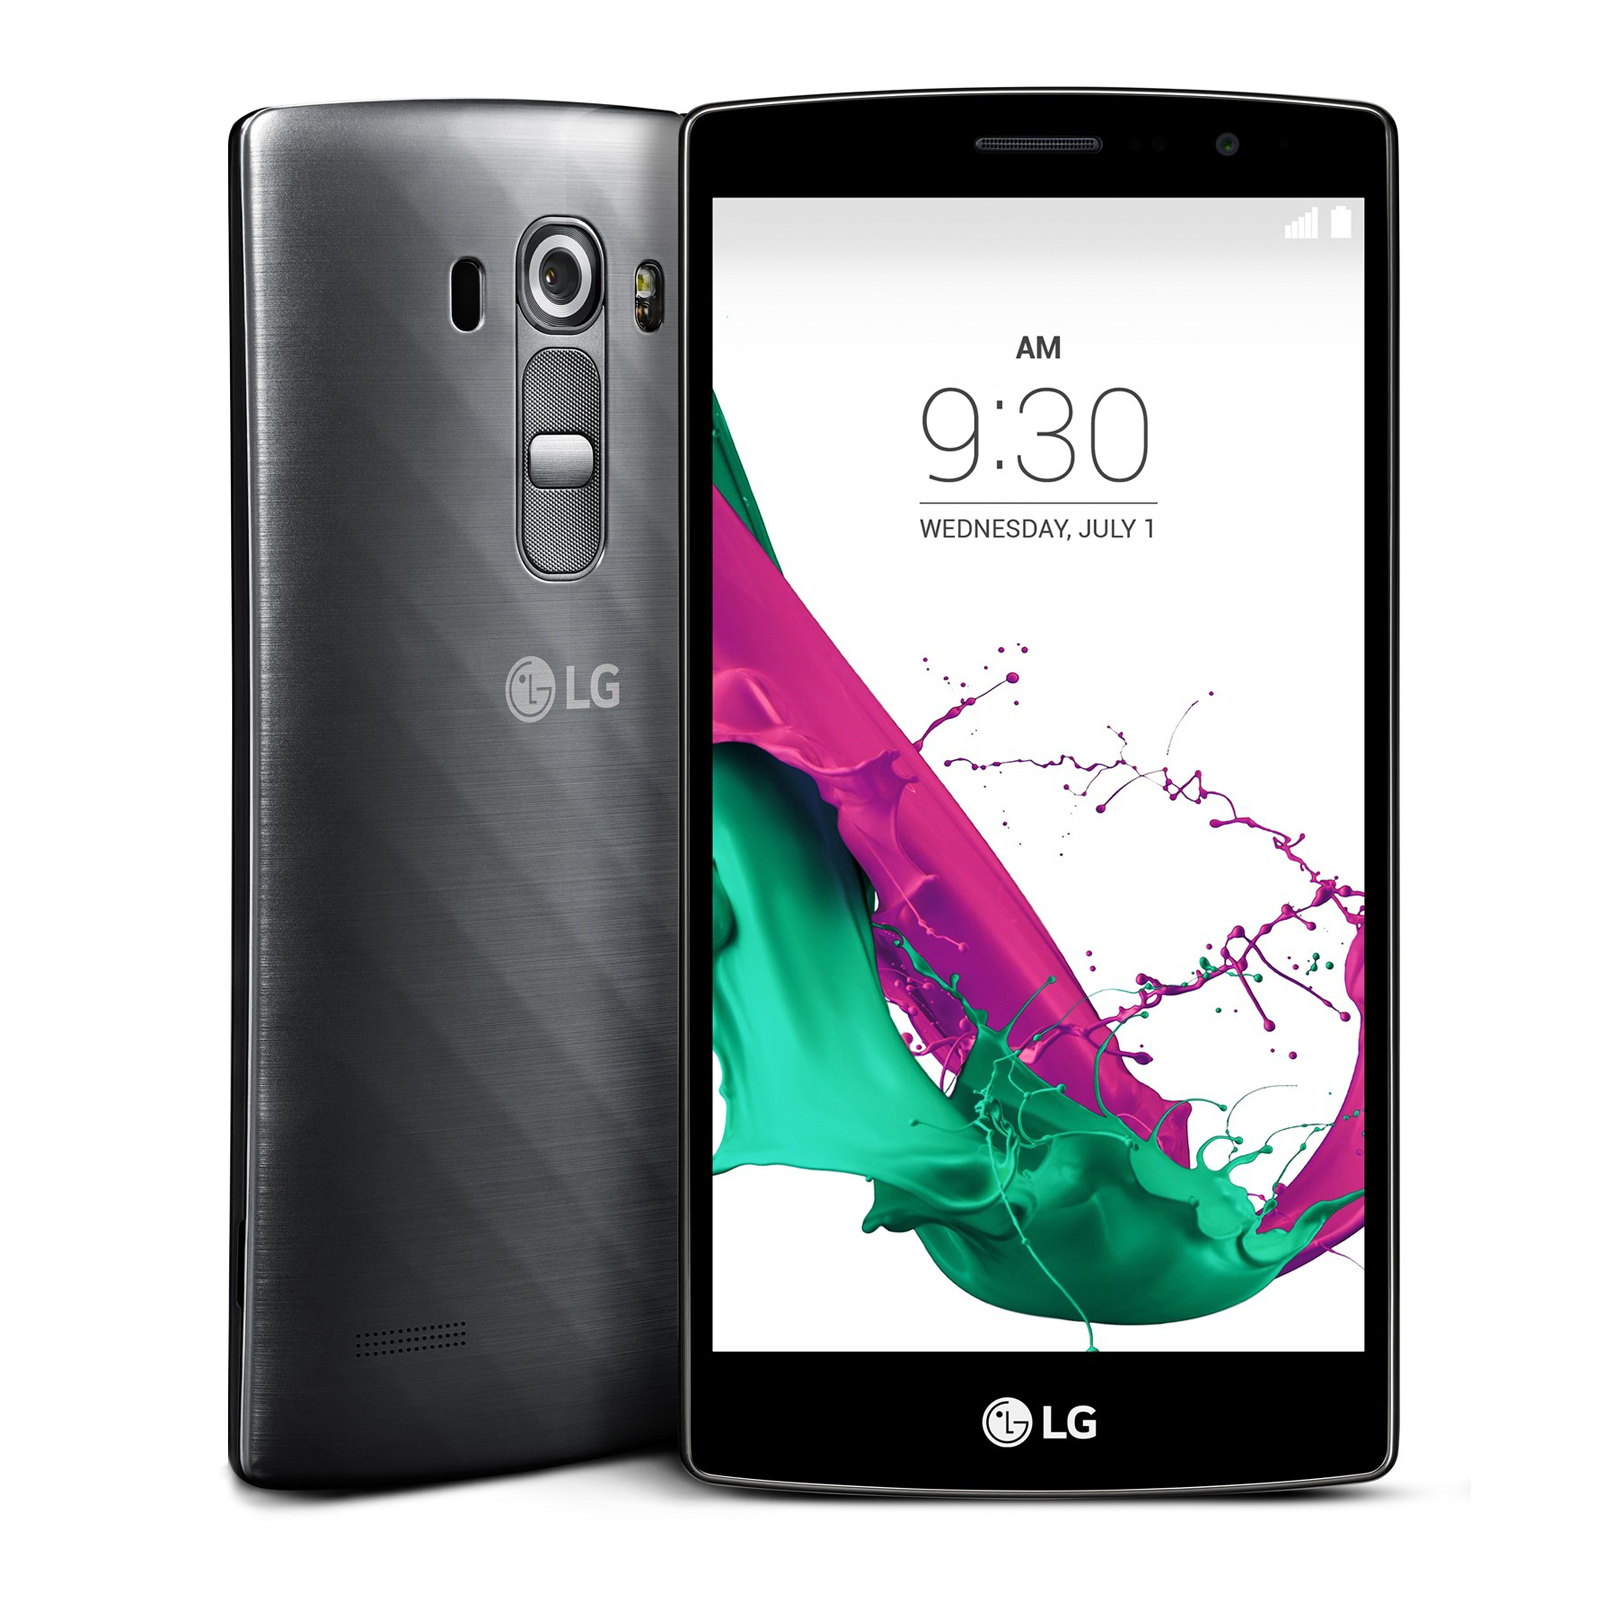 LG G4 Beat - Details, Specifications, features and Price